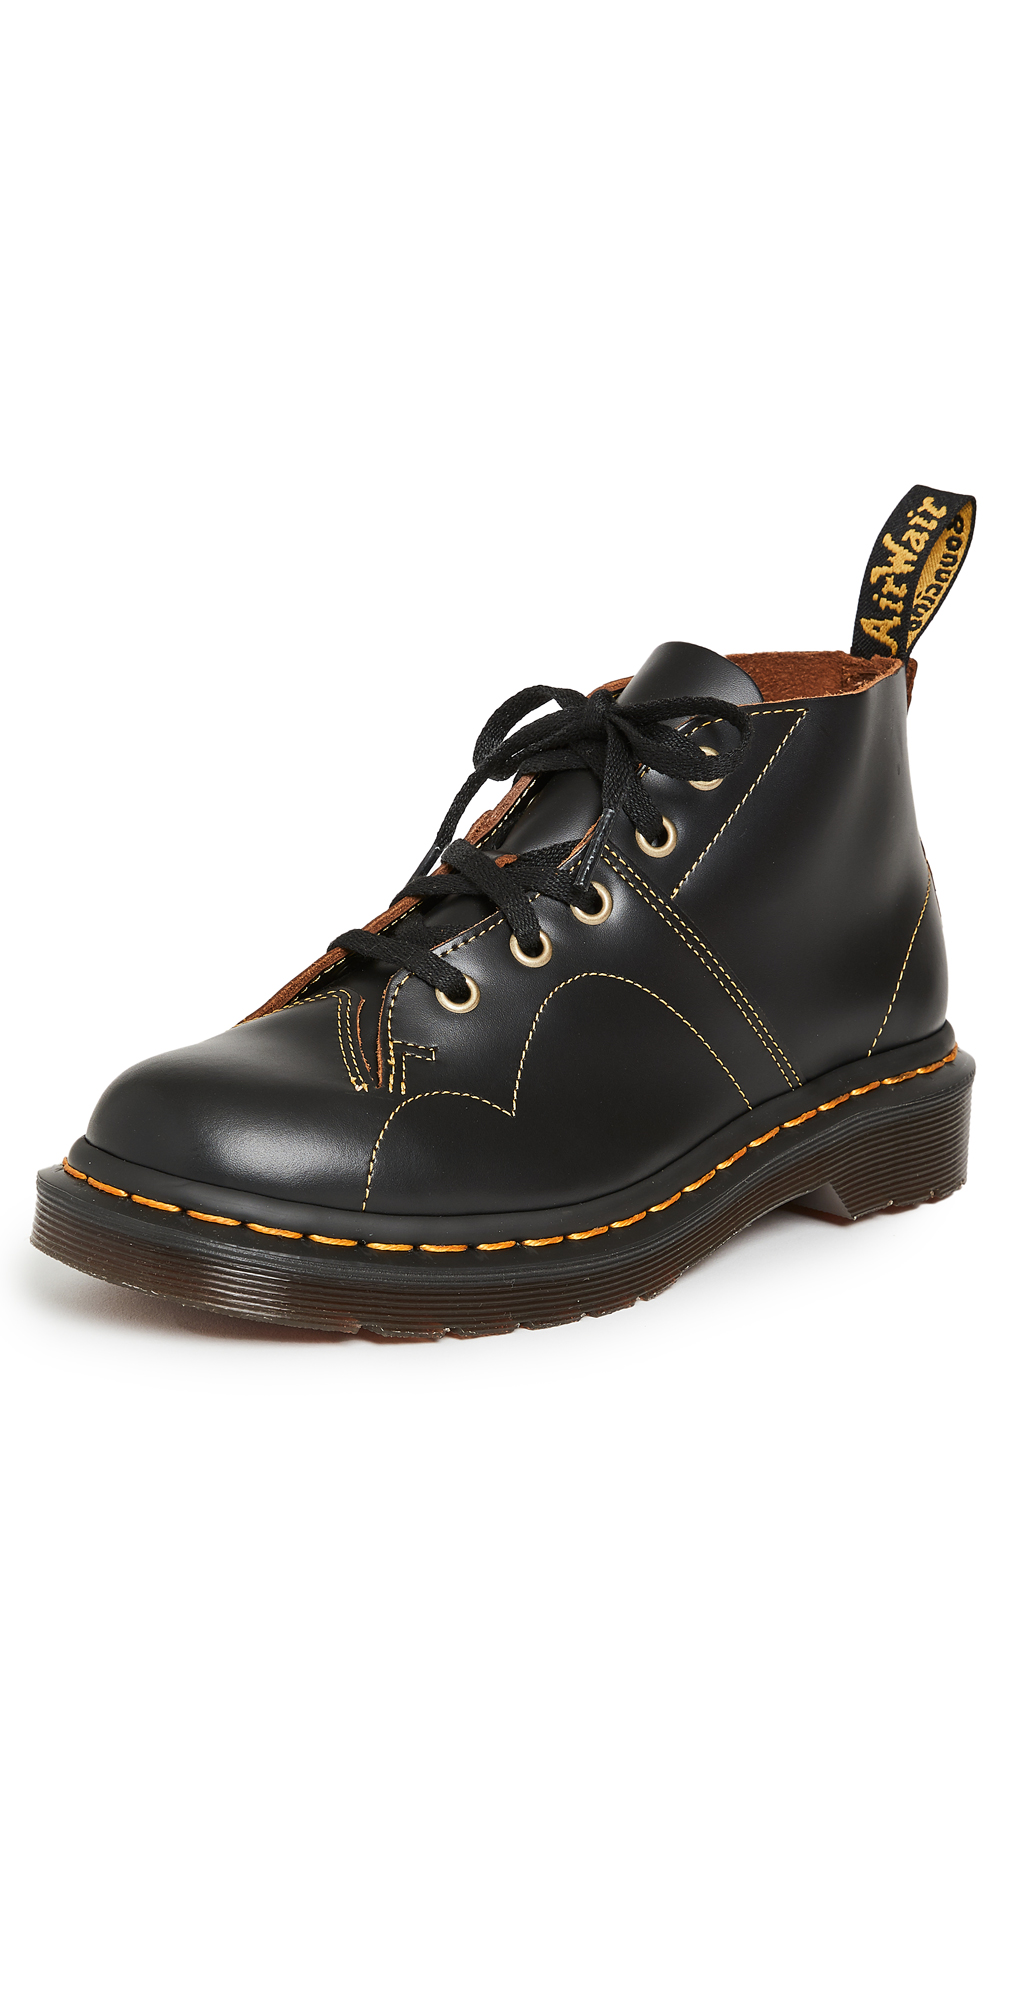 Dr. Martens Church Vintage Monkey Boots